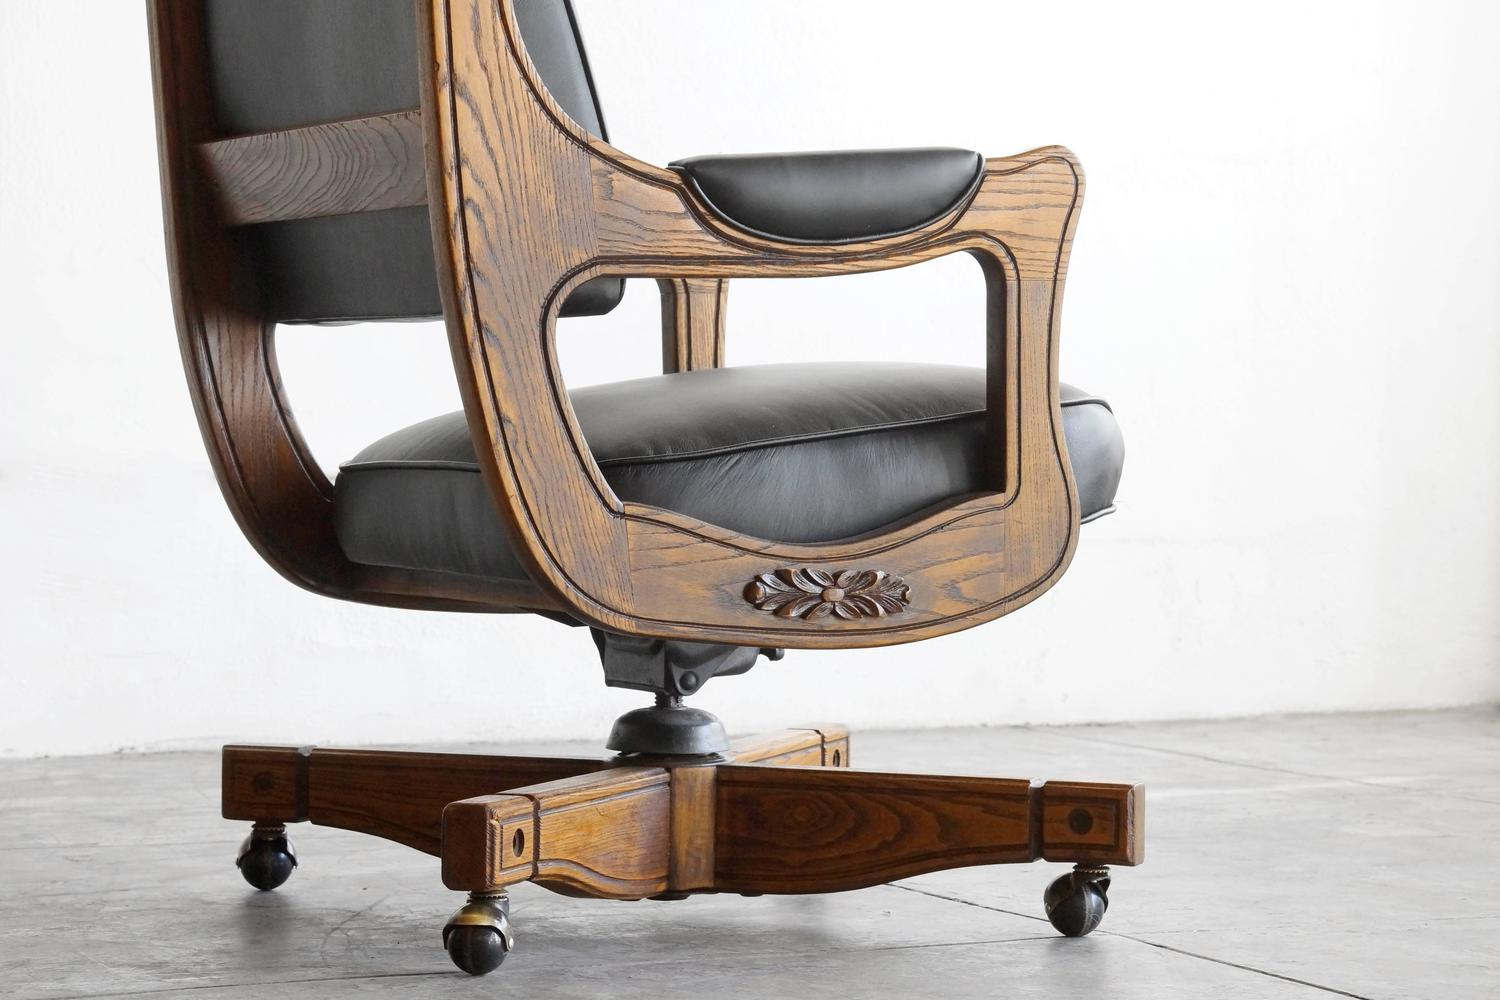 captains chair steelcase amia canada antique chesterfield in oak and leather at